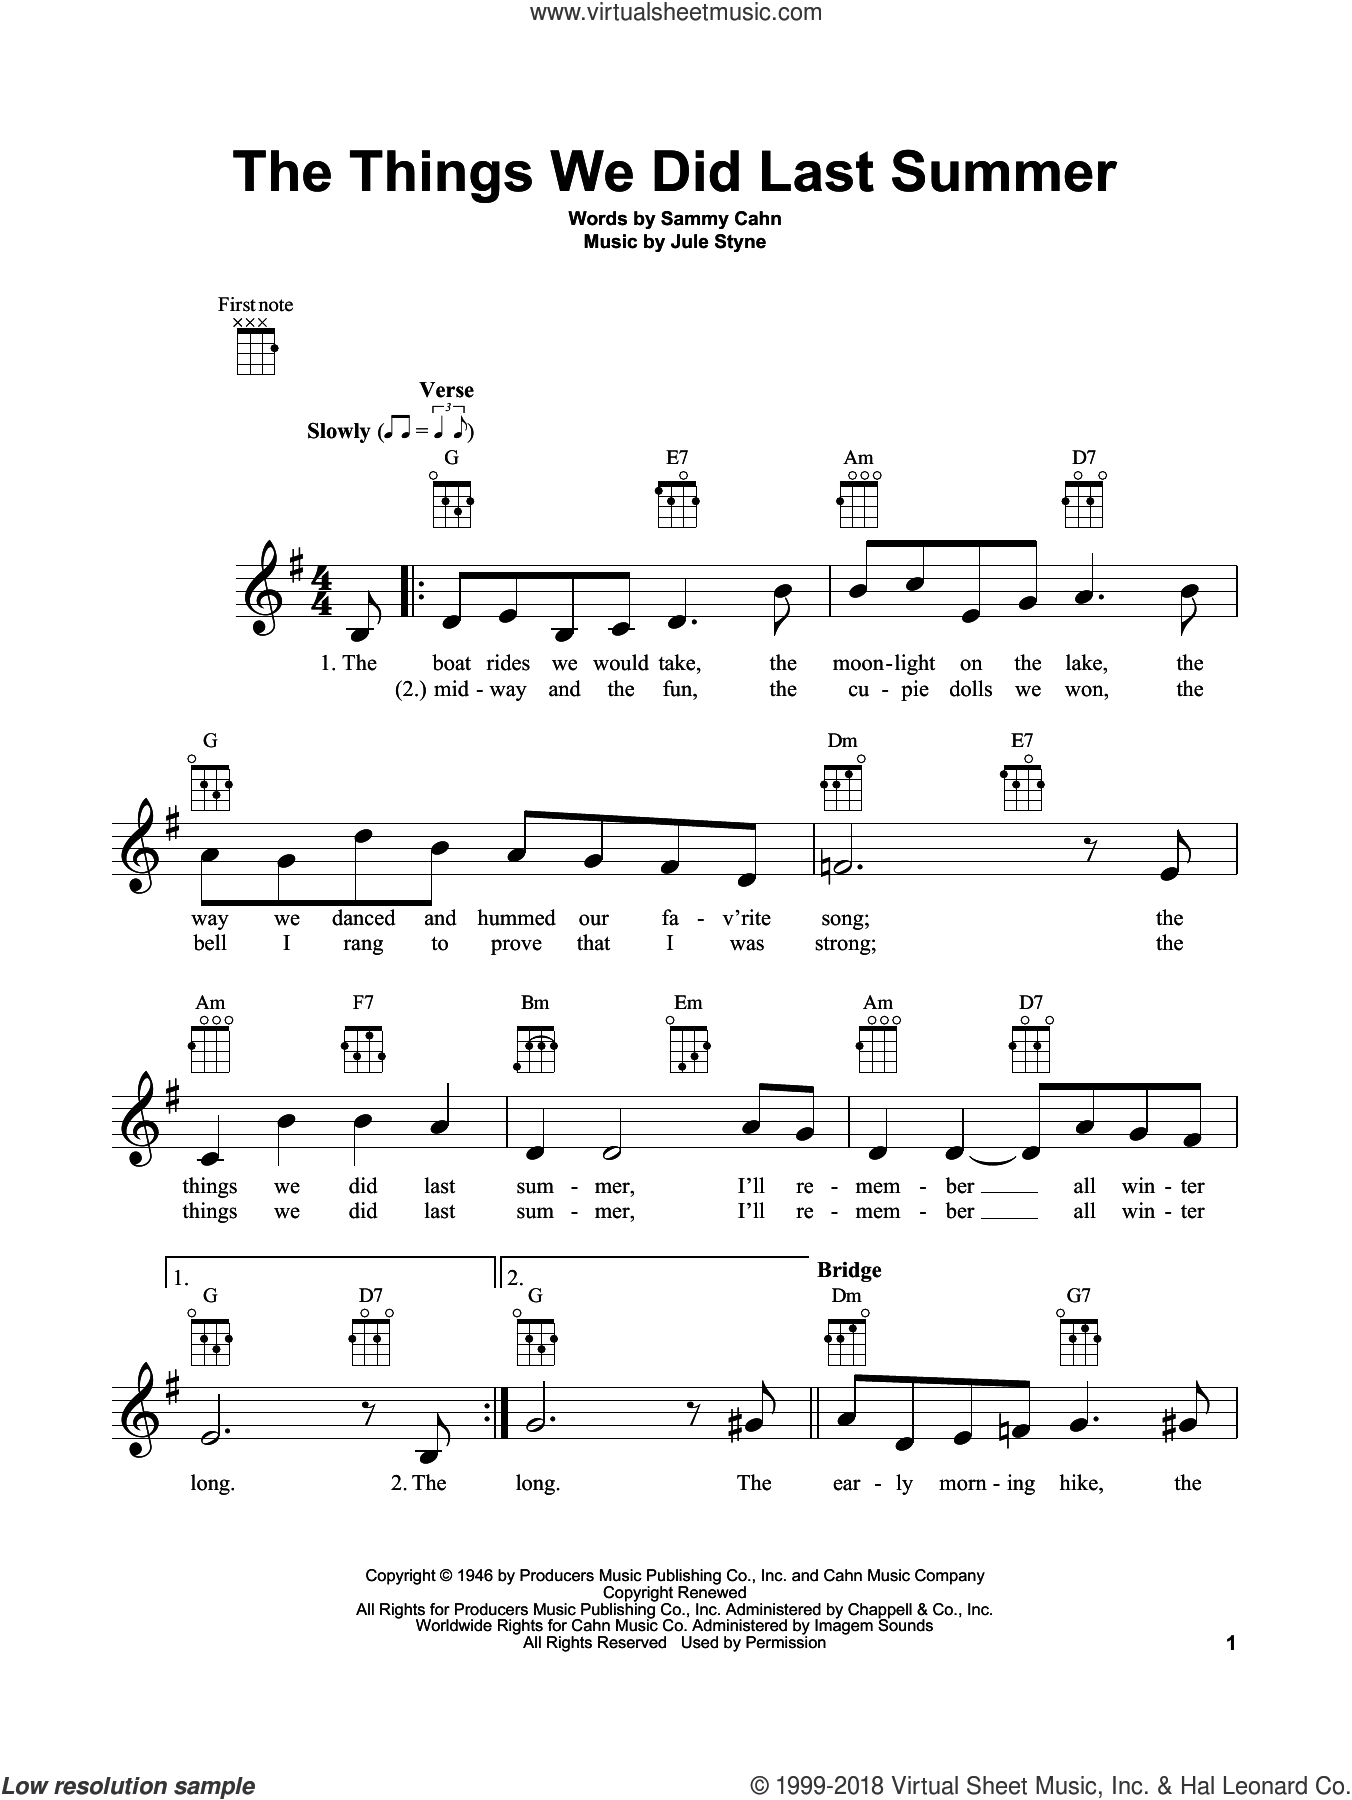 The Things We Did Last Summer sheet music for ukulele by Sammy Cahn and Jule Styne, intermediate skill level